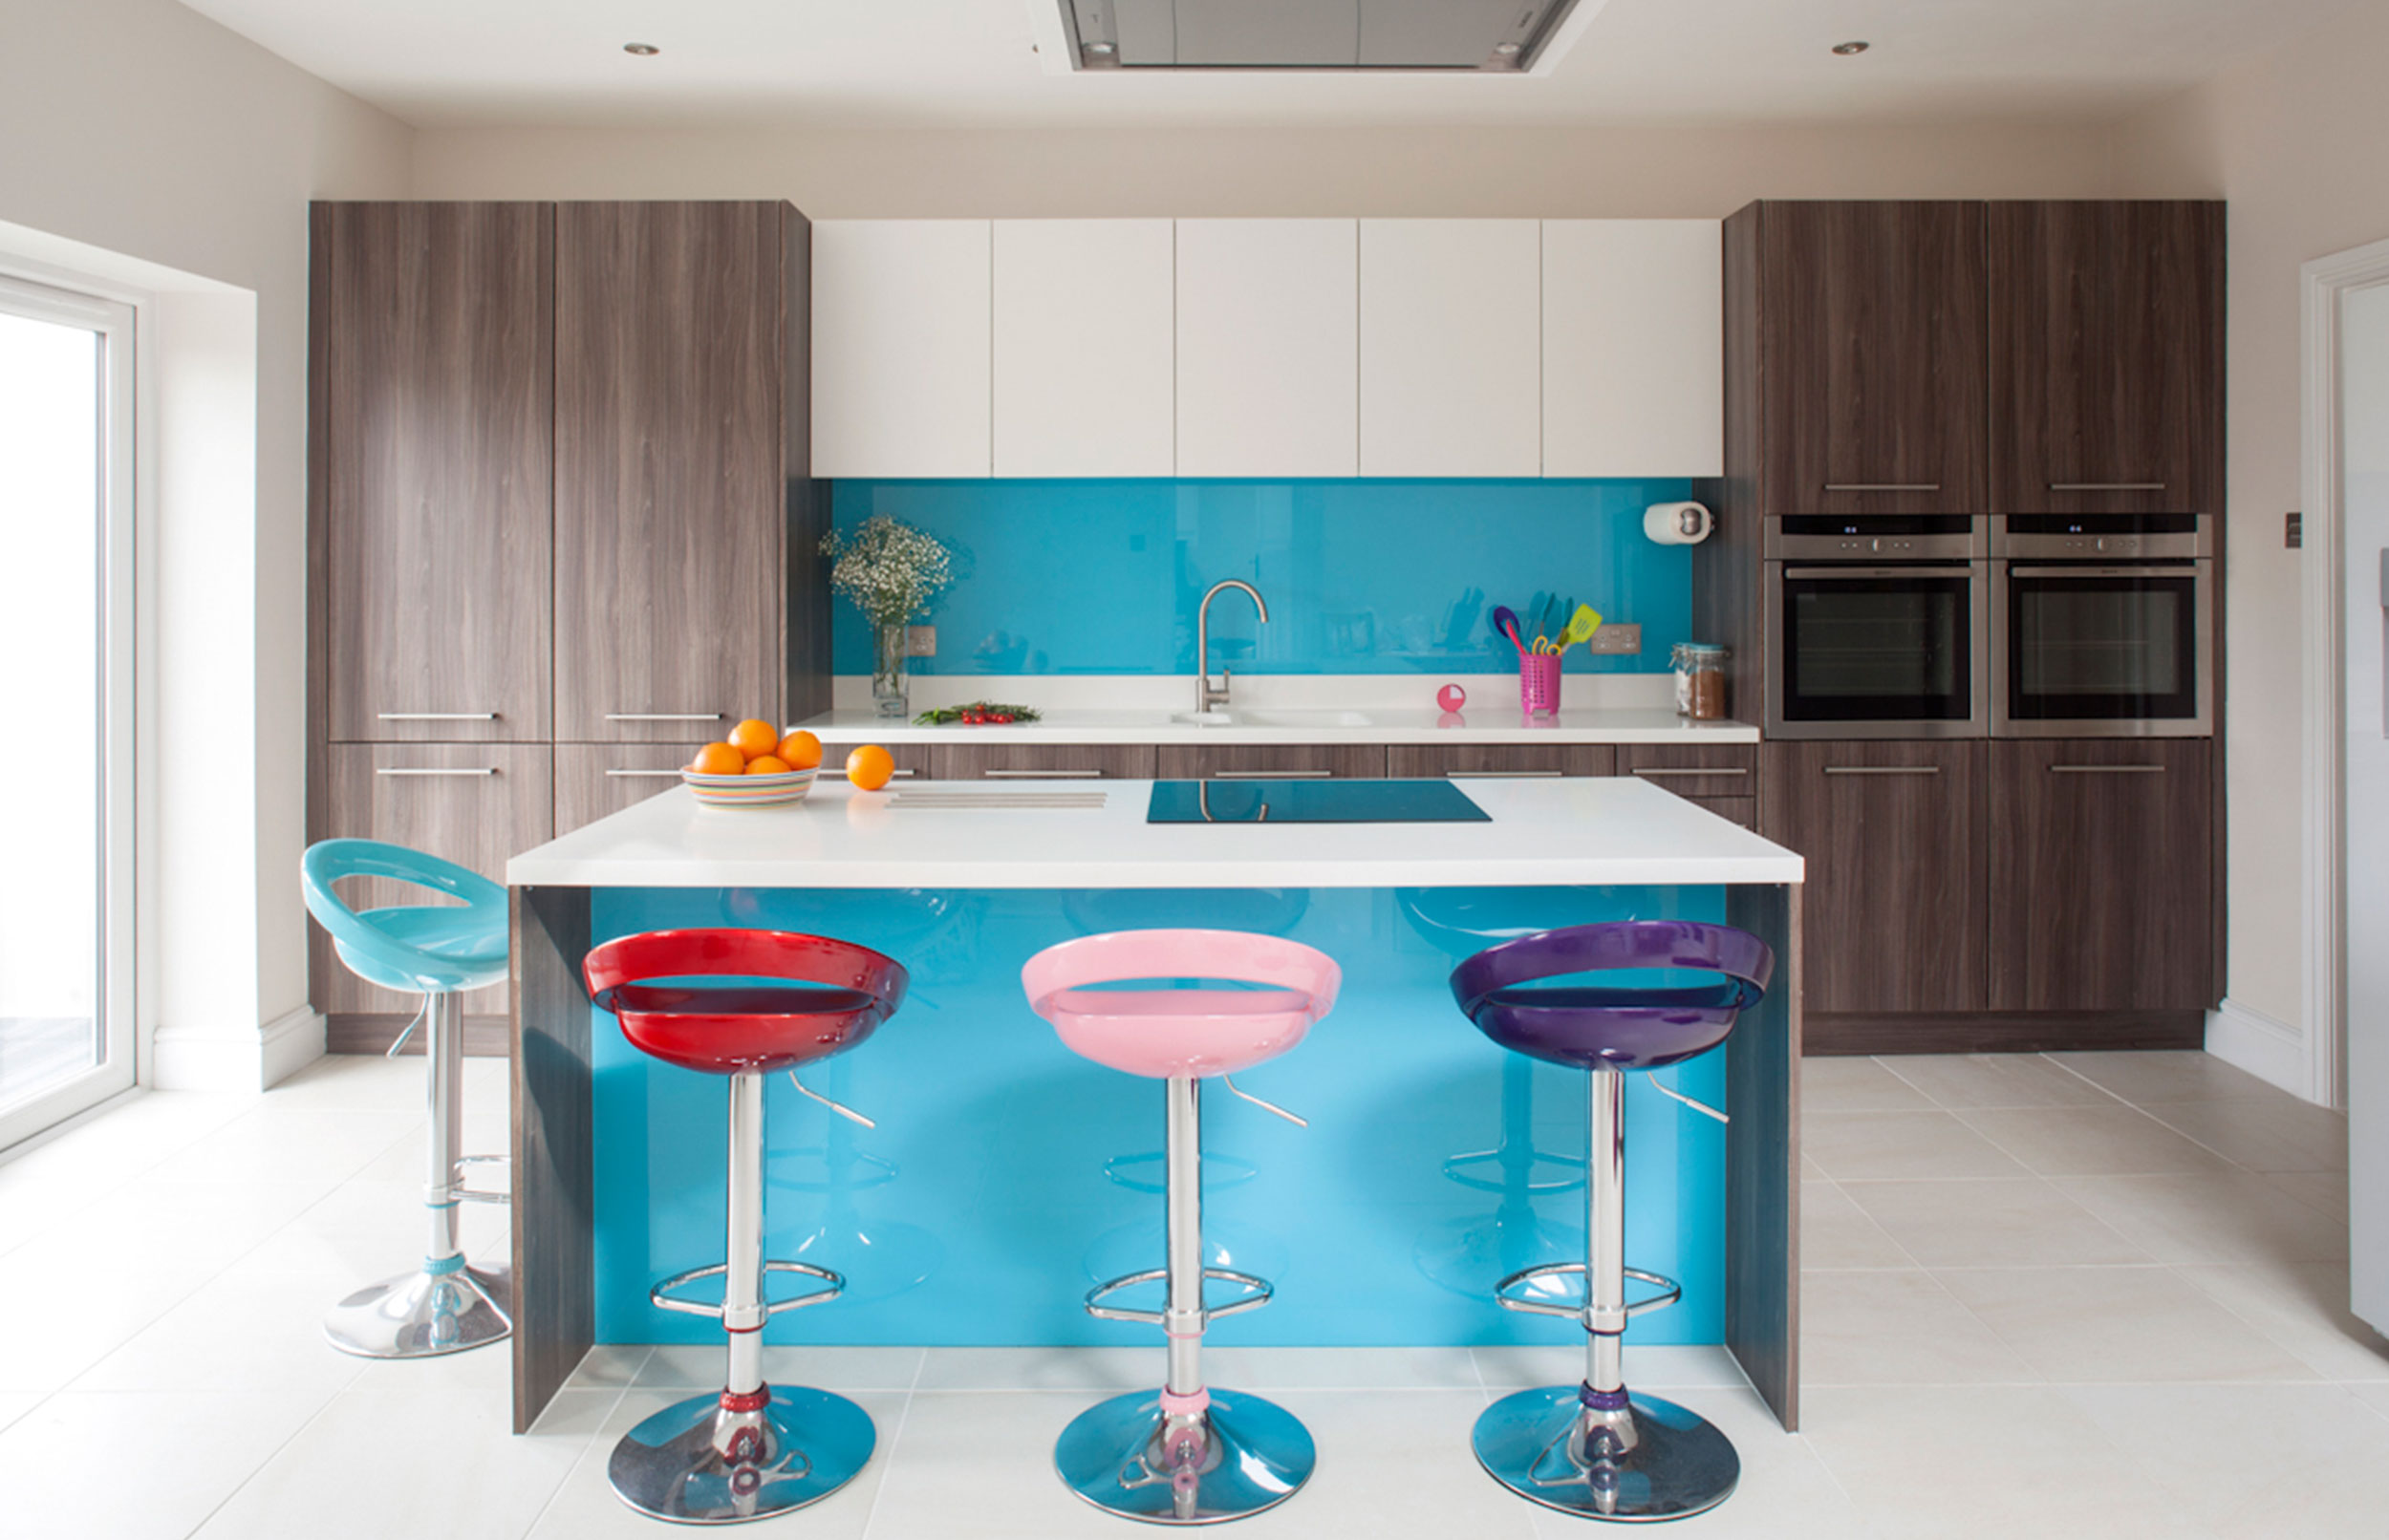 Dynamic Bespoke Kitchen with Stools, Island and Preparation Area in View